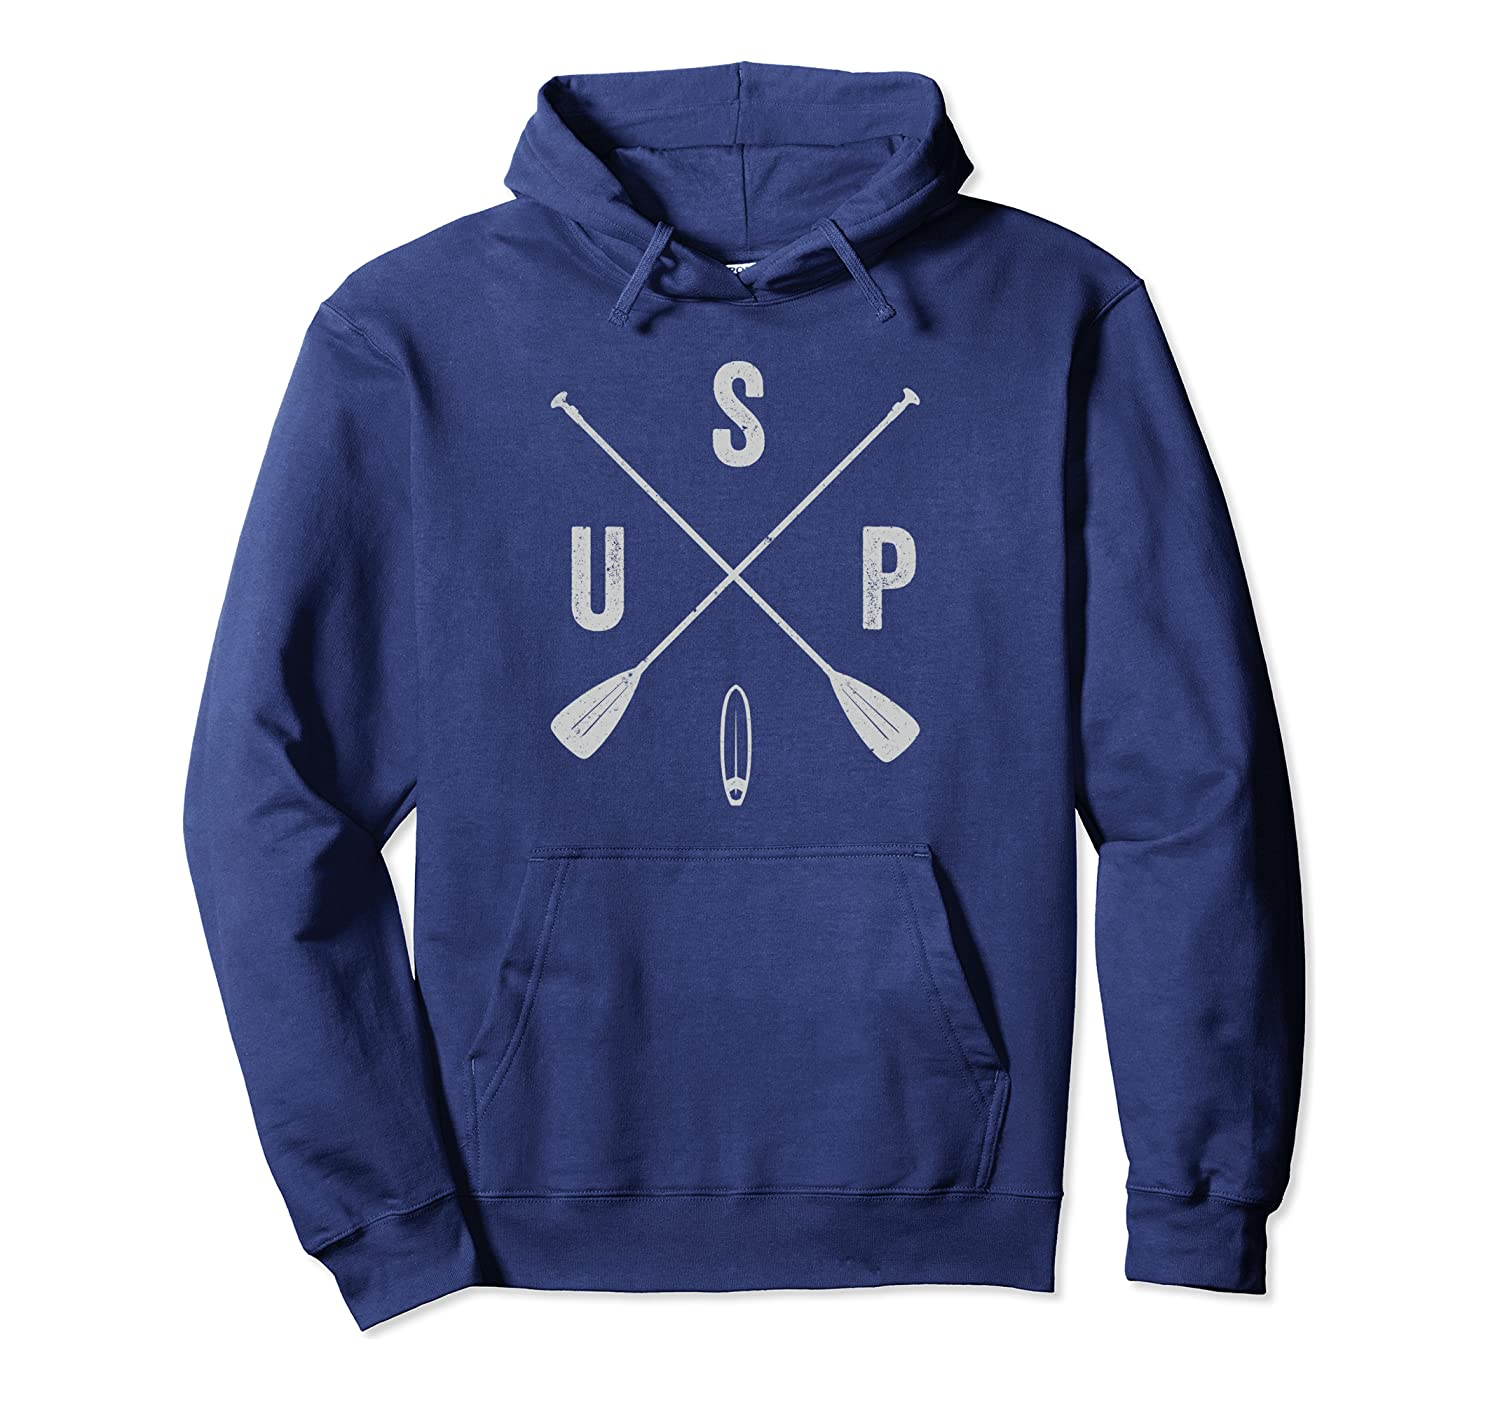 Classic Stand Up Paddle Board Crossed Paddle Design Pullover Hoodie